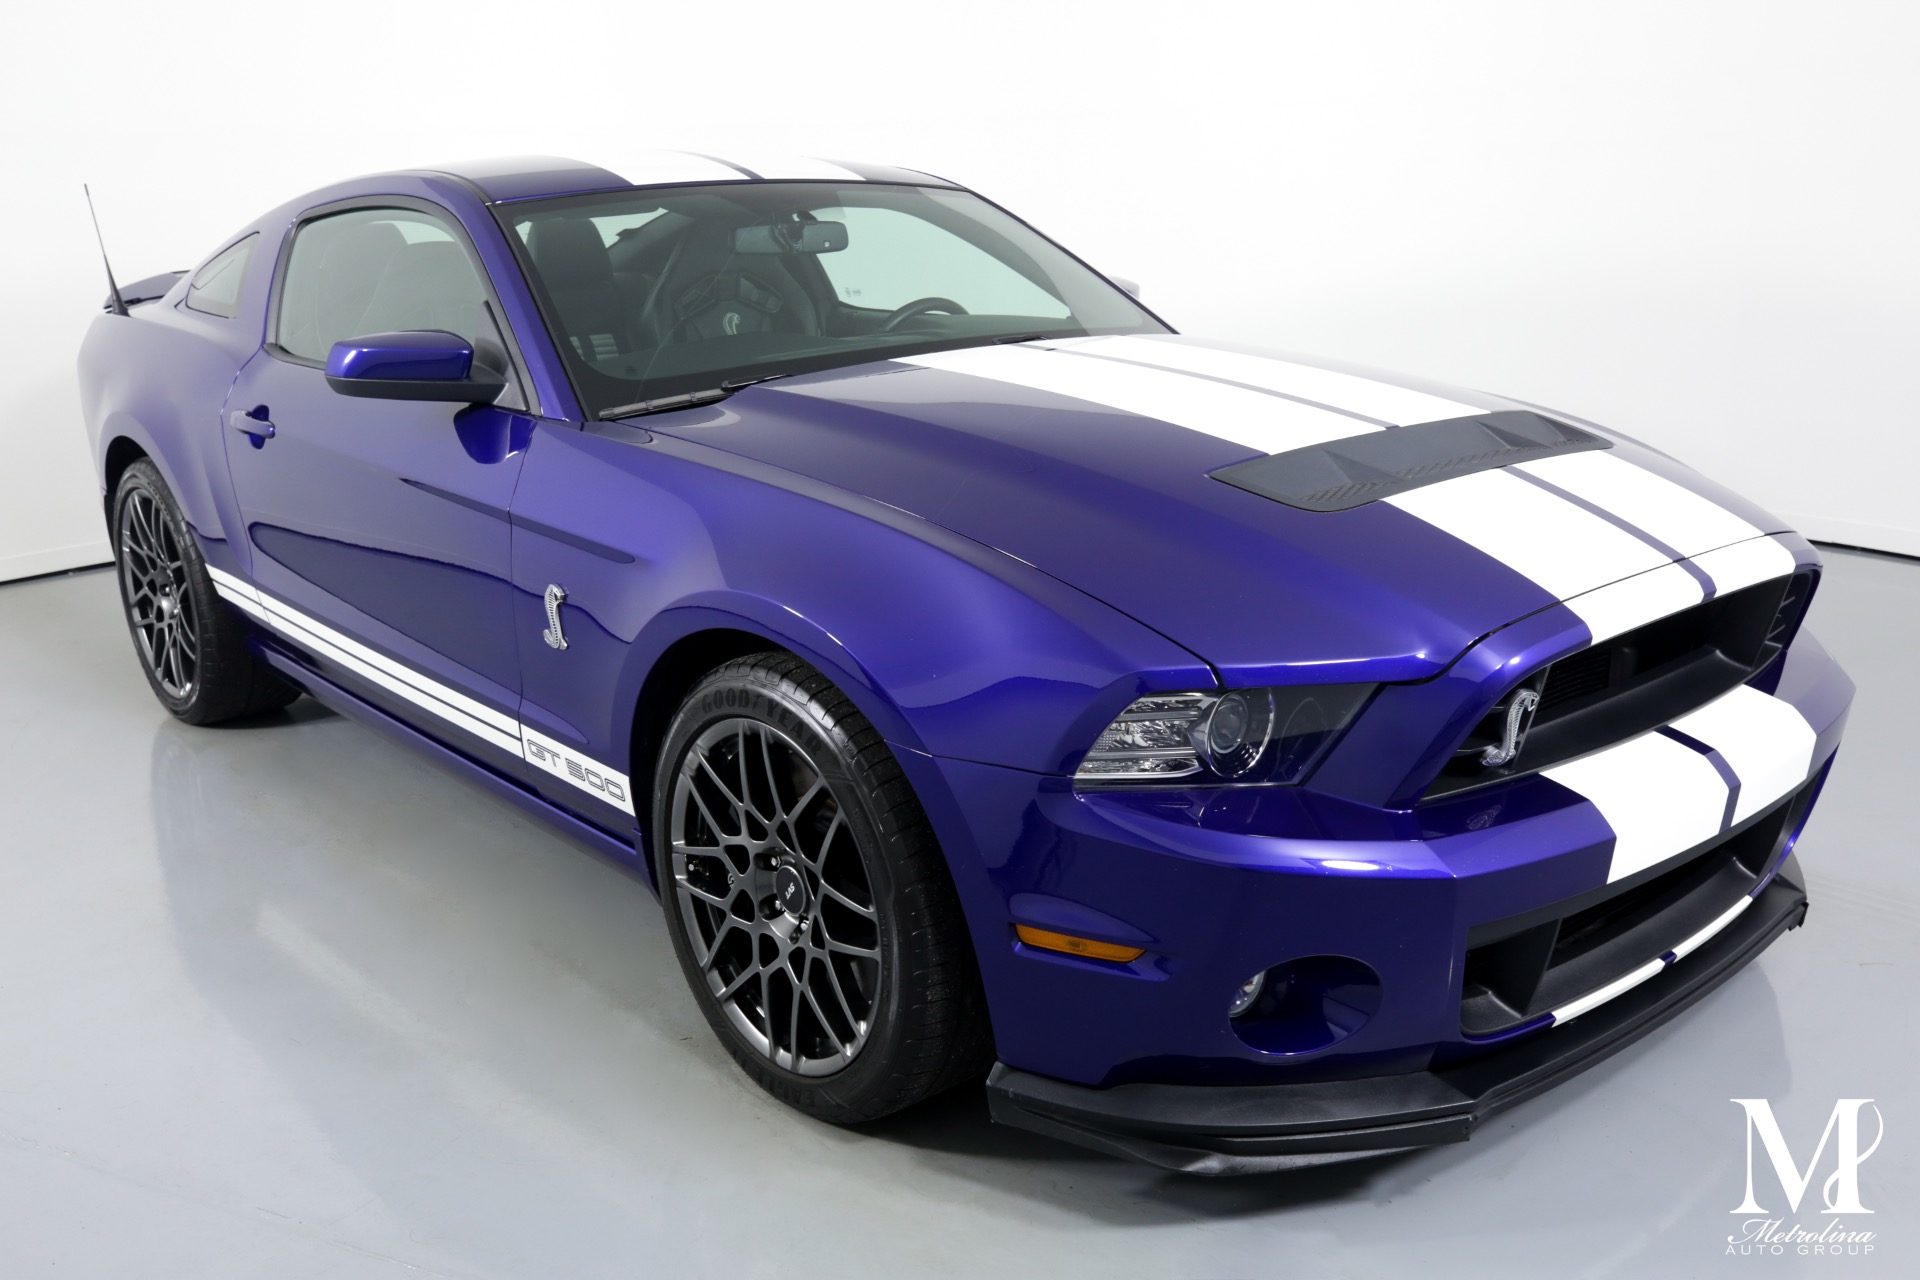 Used 2014 Ford Shelby GT500 for sale Sold at Metrolina Auto Group in Charlotte NC 28217 - 2